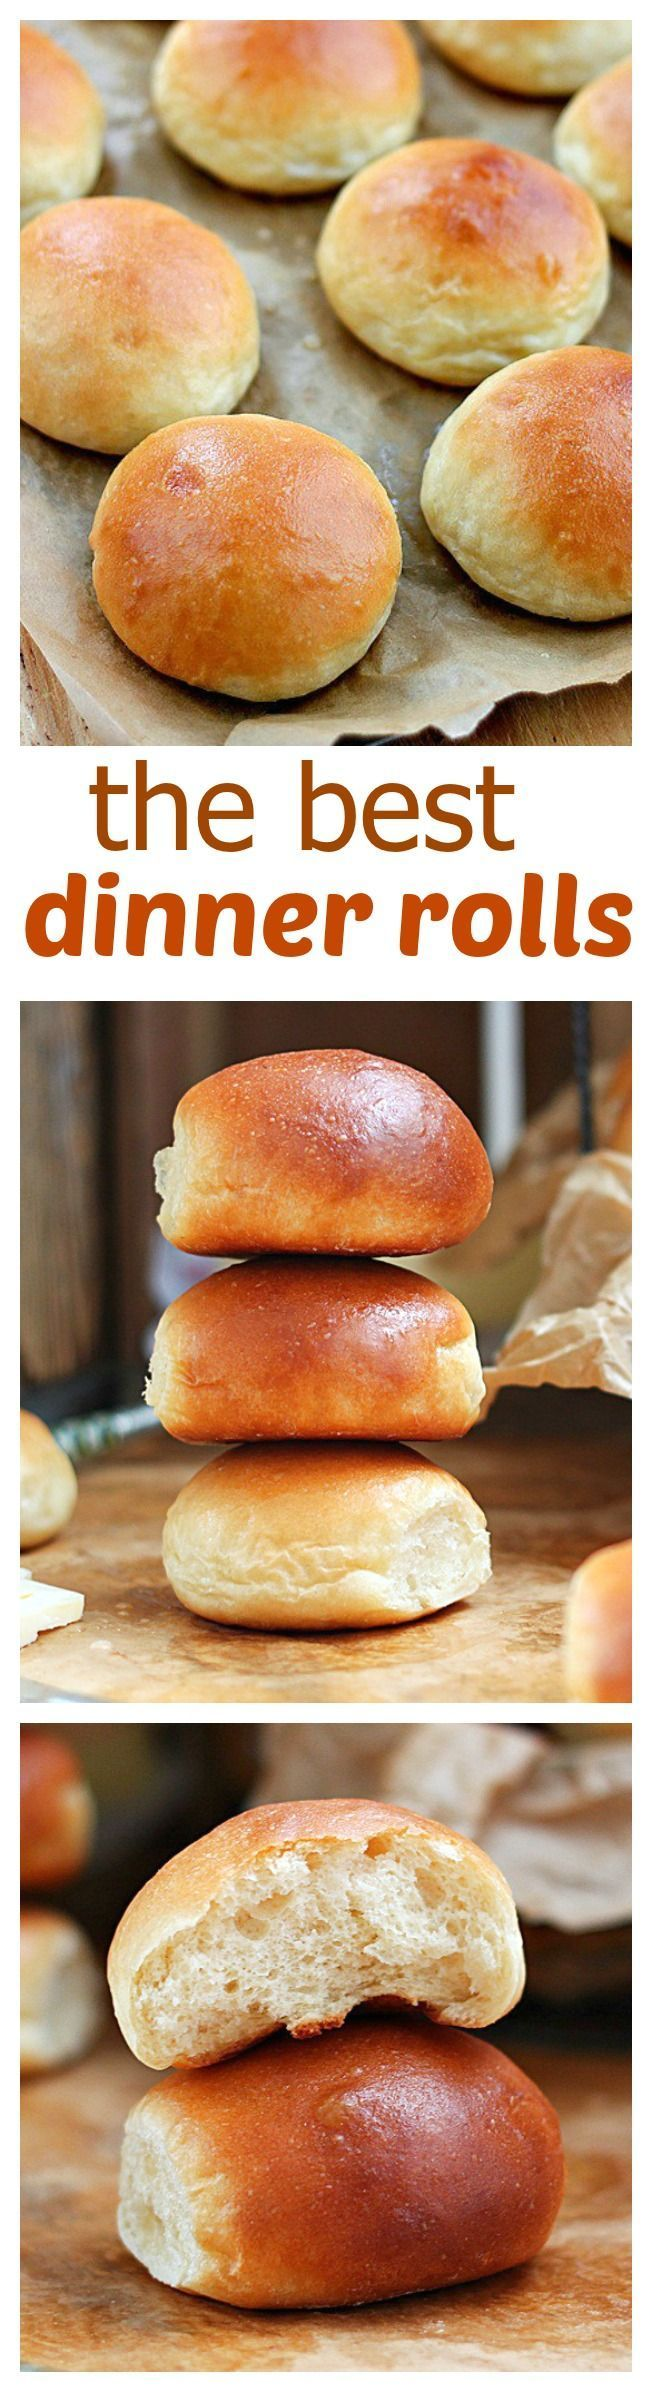 The best dinner rolls (from scratch)